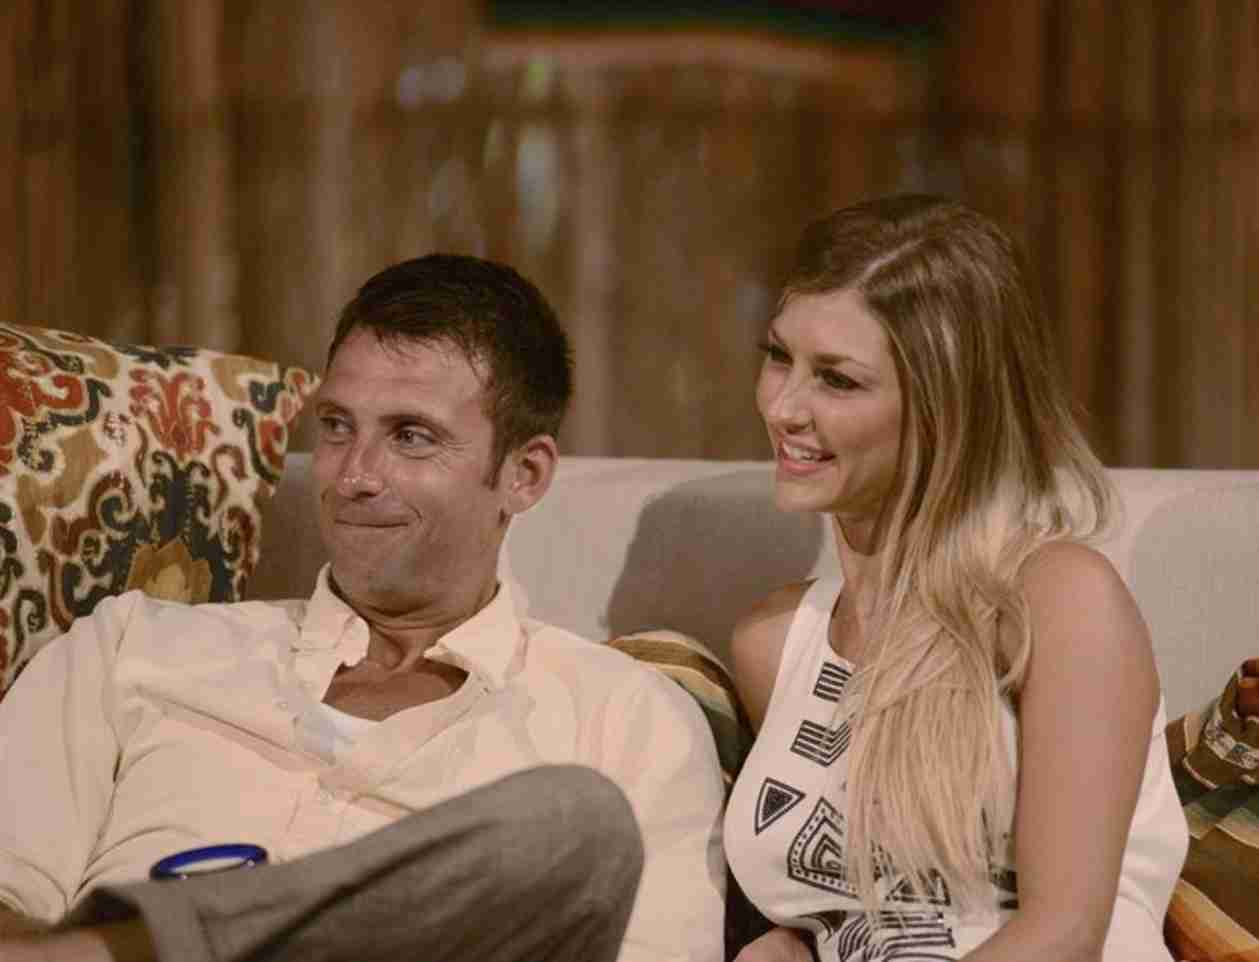 Bachelor in Paradise Episode 4 Ratings: Did Viewers Skip the Emmys to Watch?